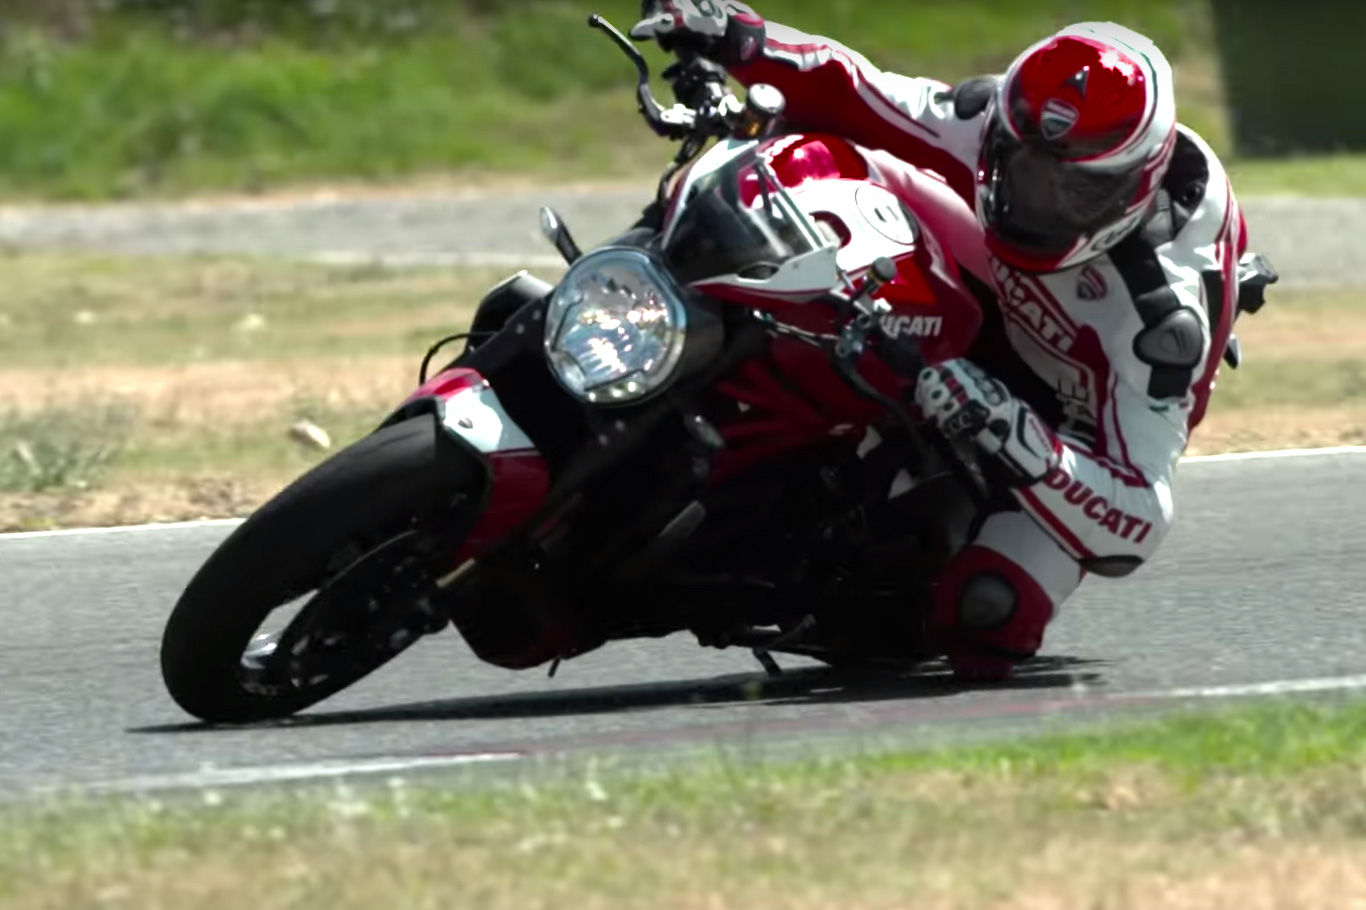 Ducati Monster 1200 R in action